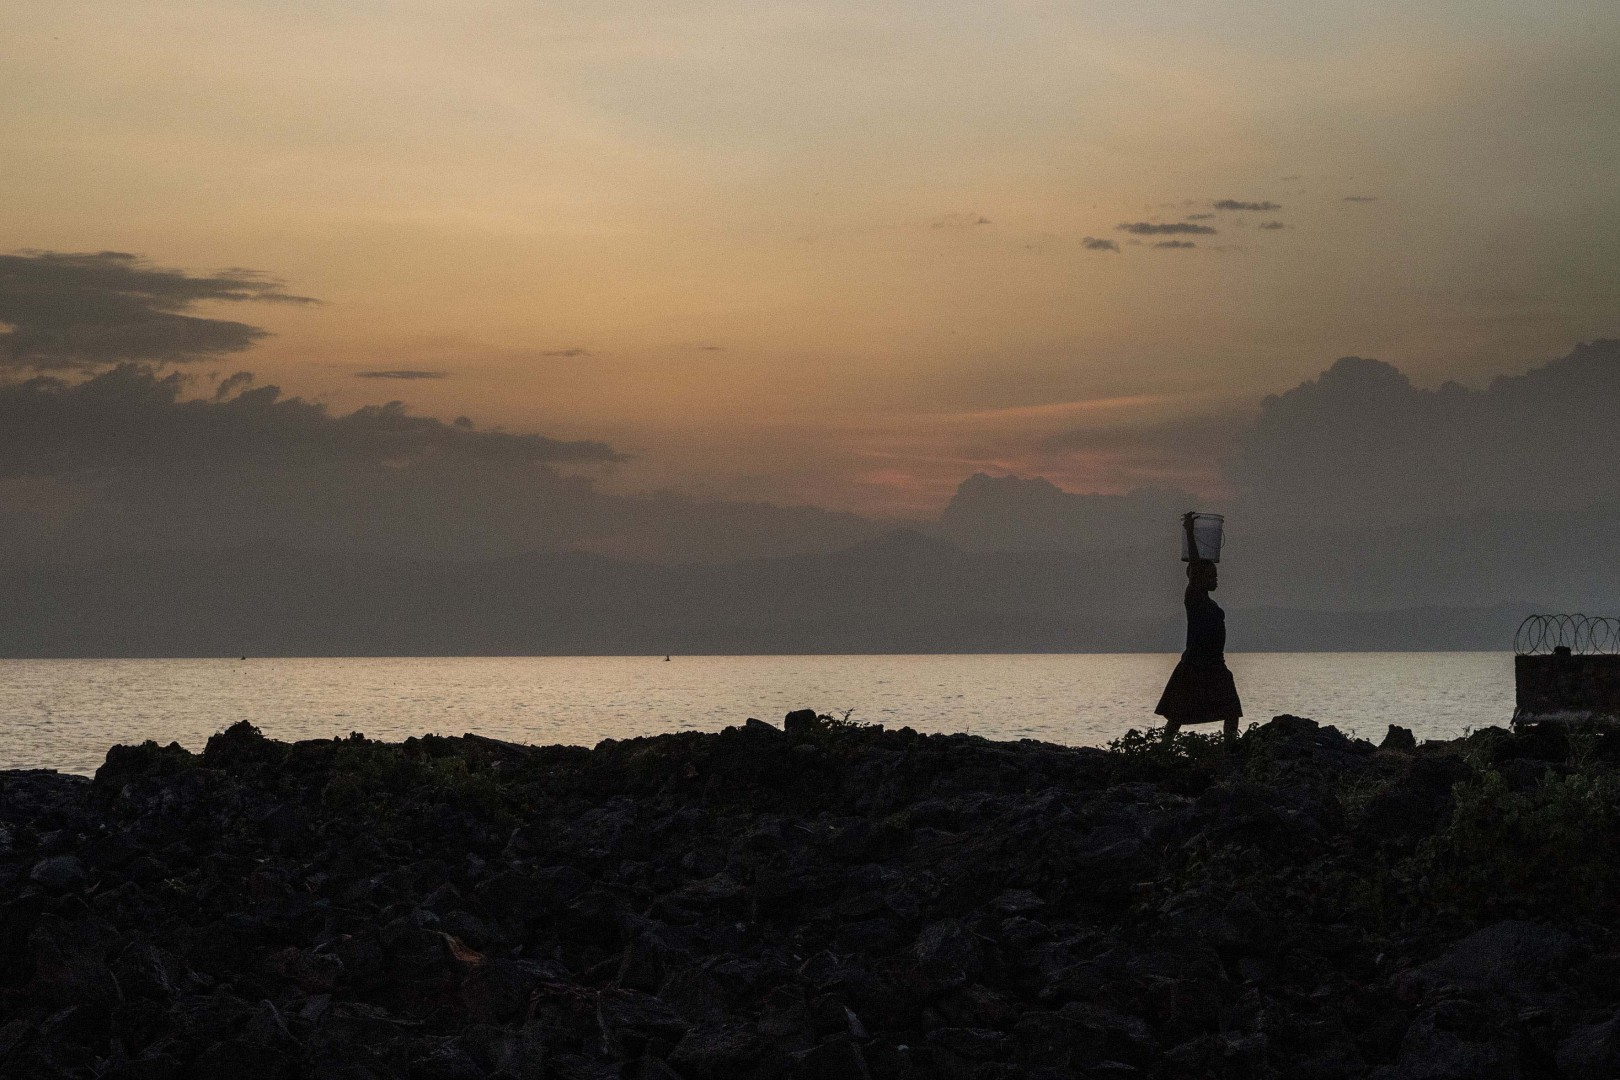 Africa, Democratic Republic of Congo, North Kivu, Goma. 24/01/2017. A landscape of the Kivu Lake at the sunset. Women are a driver for Congolese society, because it is the women who perform the most varied tasks in order to support their families, and they are also responsible for raising children. More often than not, rape goes unpunished in the Congo. Rape victims totalled 15,000 in 2015 alone.